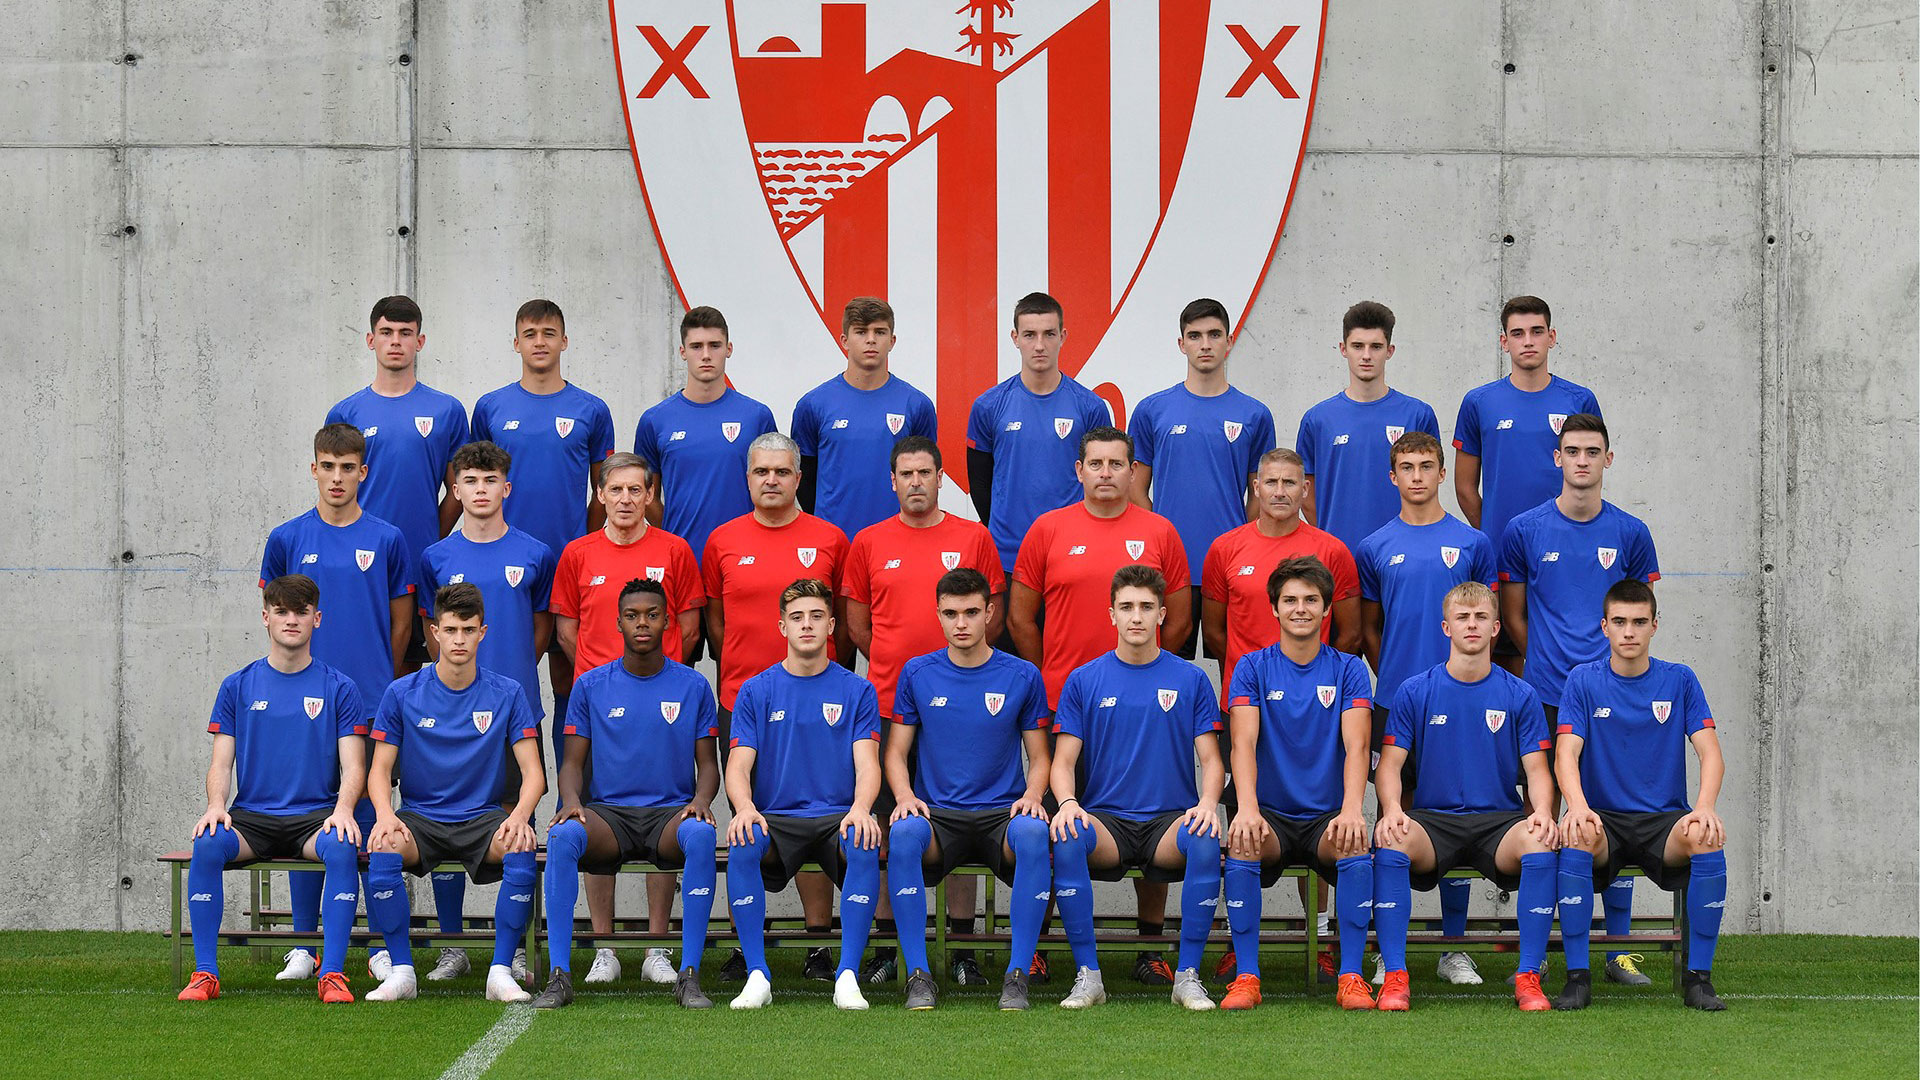 Juniors A presentation at Lezama